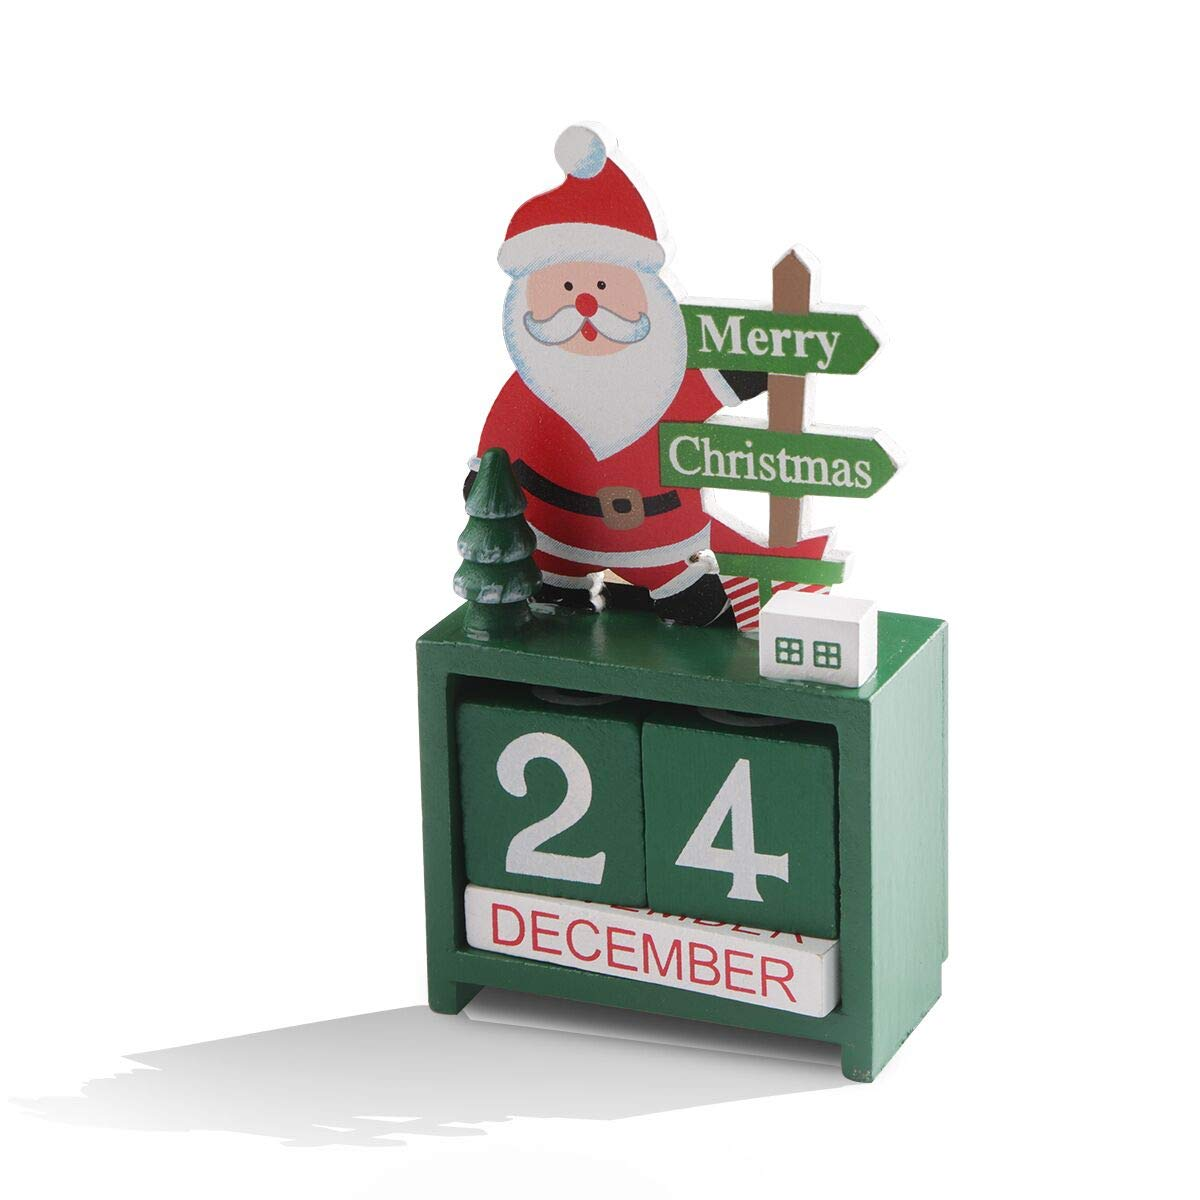 Cooliya Wooden Advent Calendar, Premium Christmas Decor Wood Construction  for Christmas Decorations Party Favors (Green)